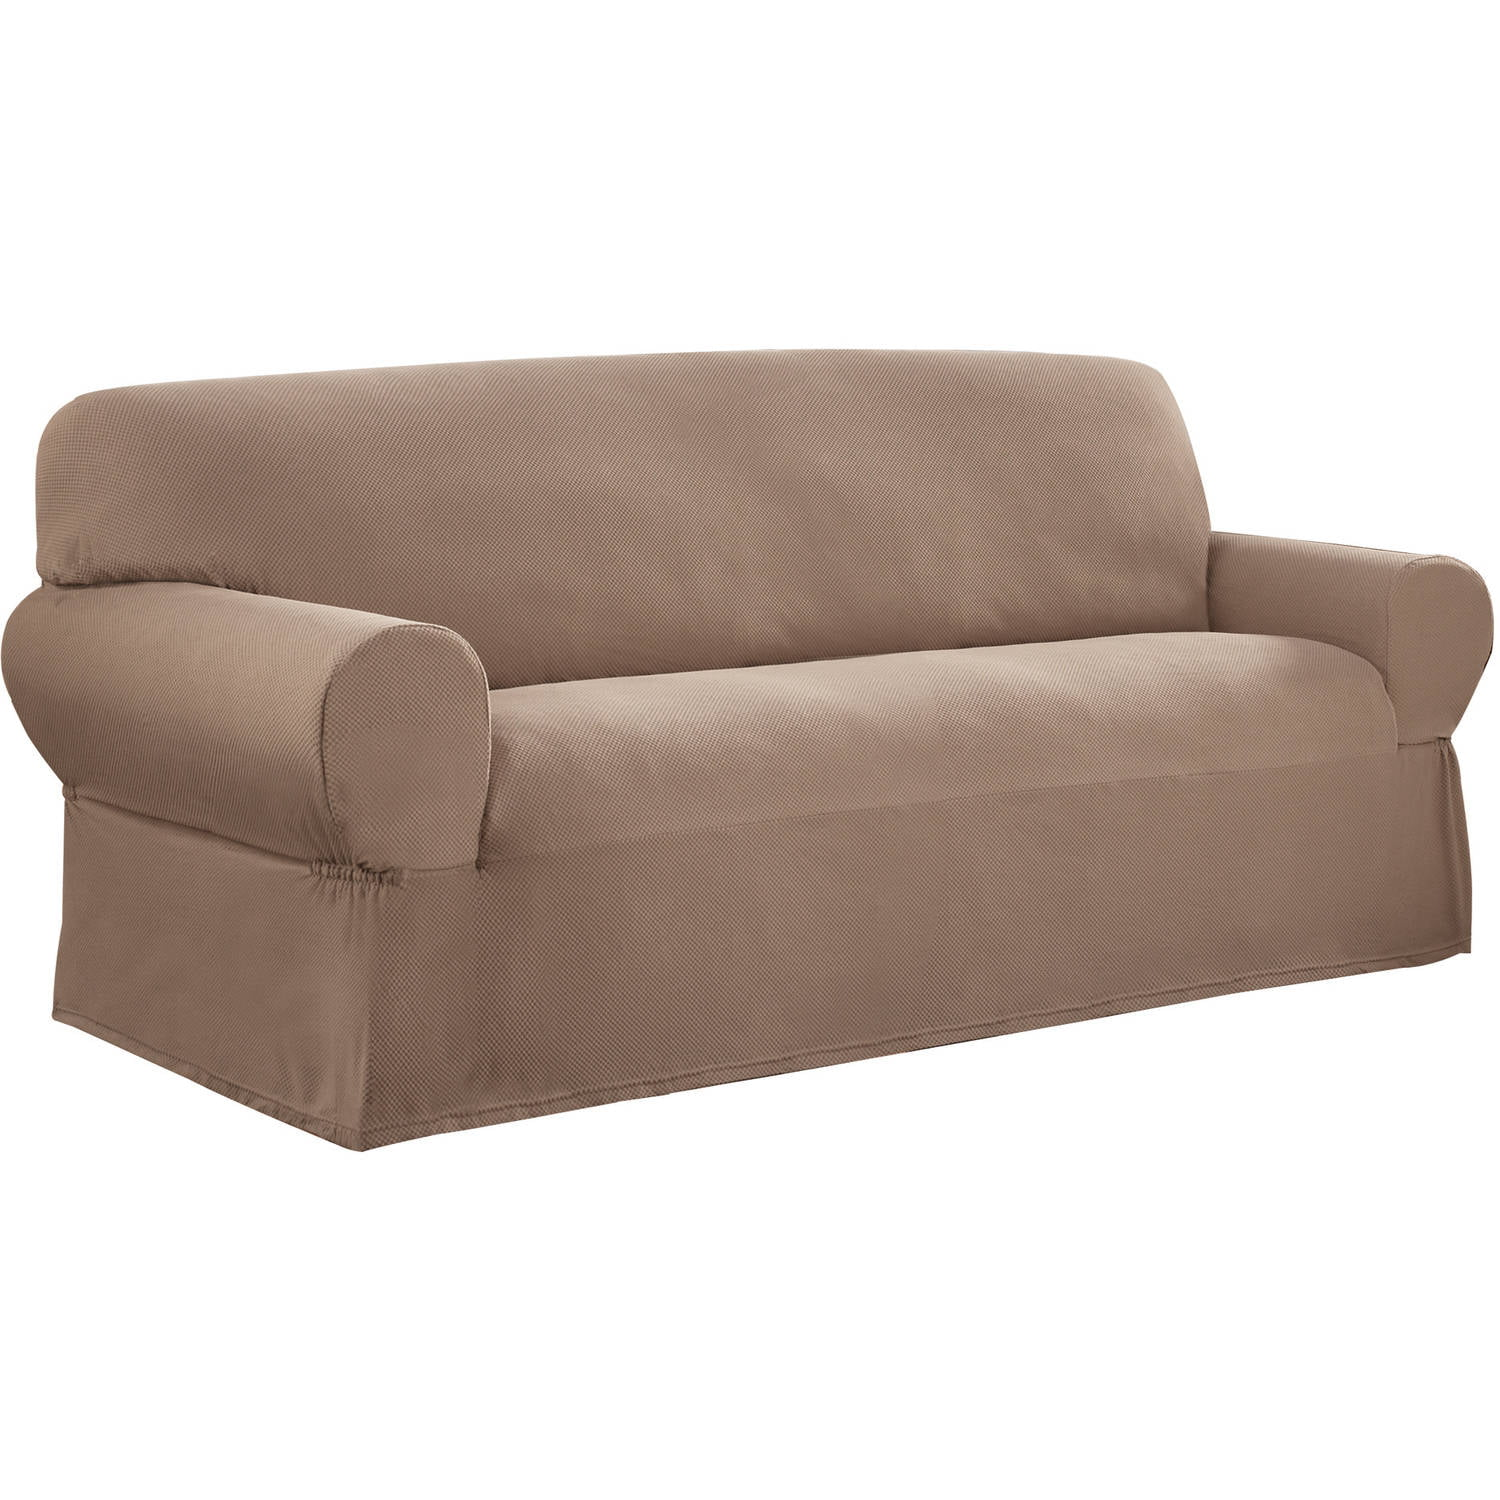 Sure Fit Scroll Brown Sofa Slipcover Walmart